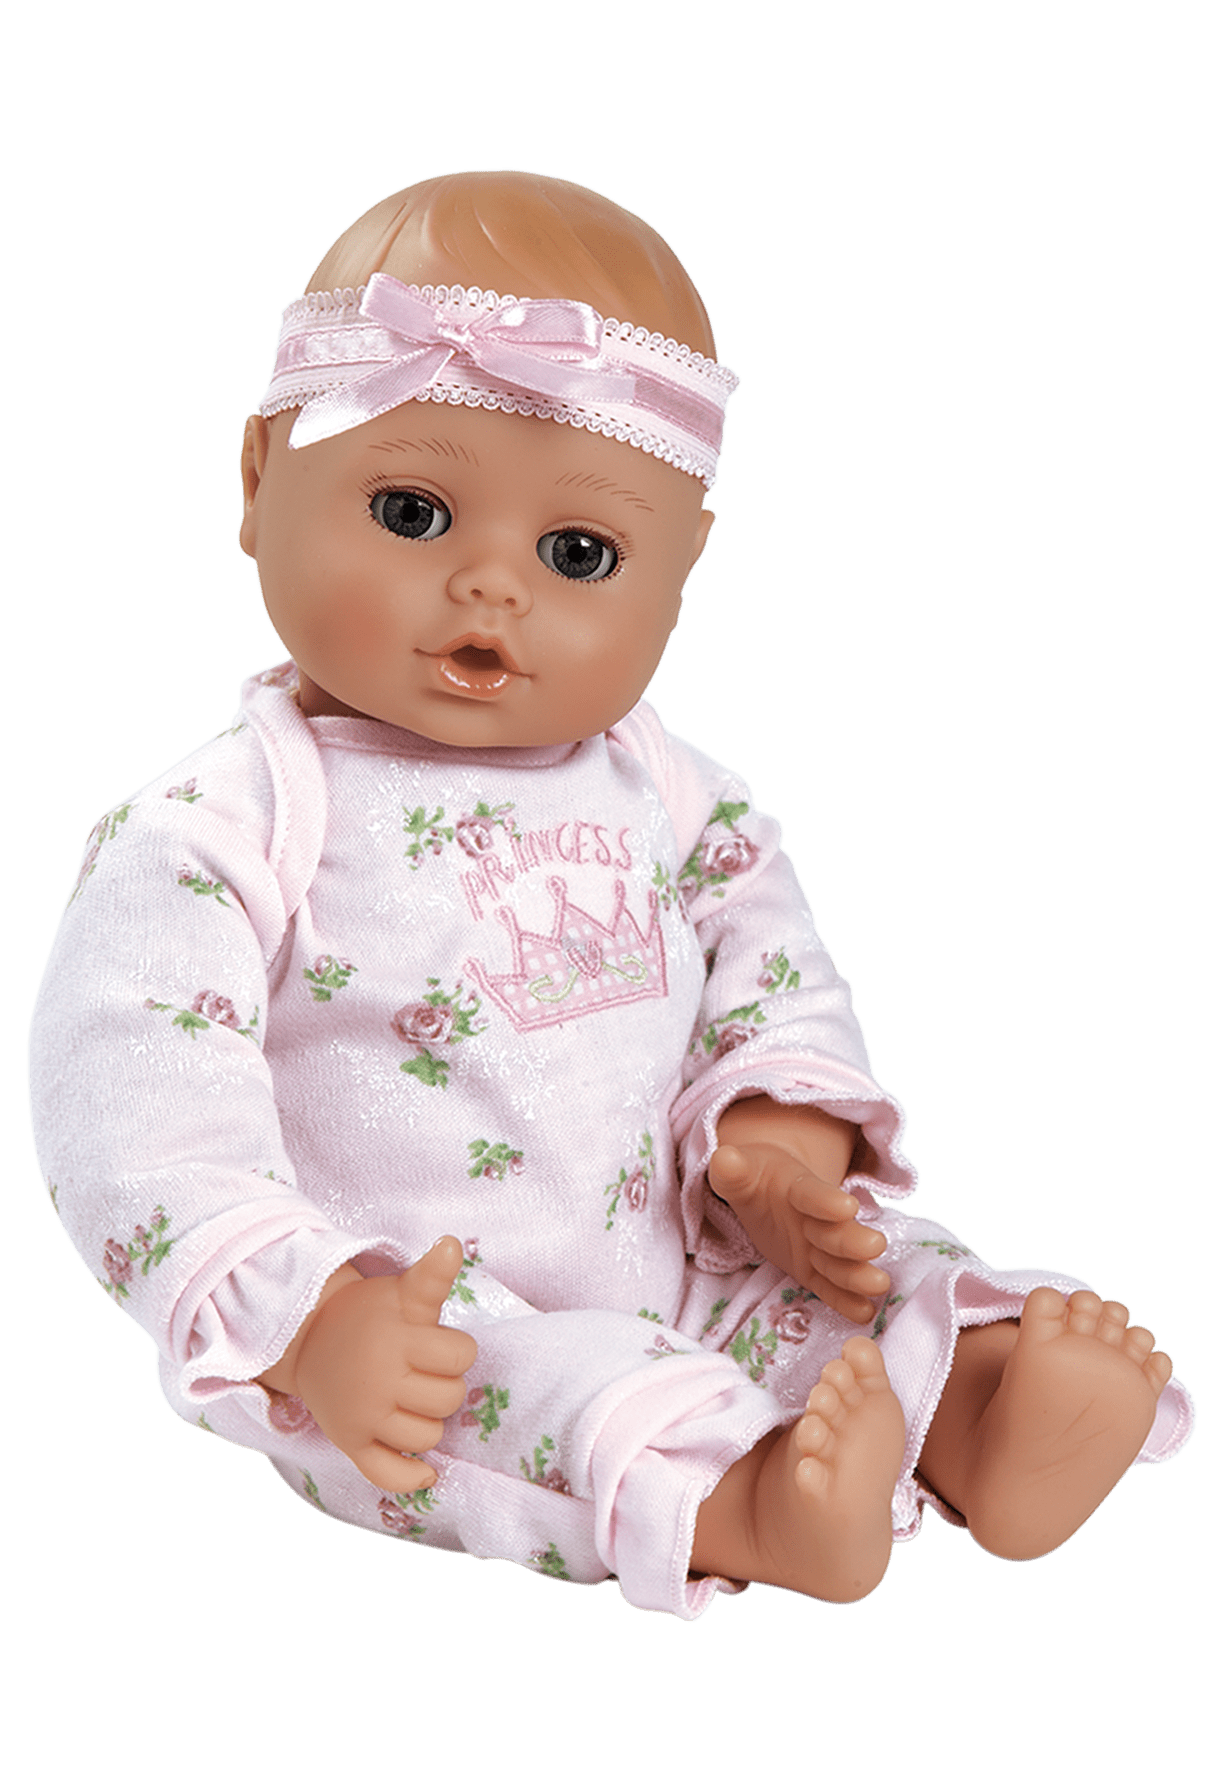 Baby doll png. Toys transparent images stickpng